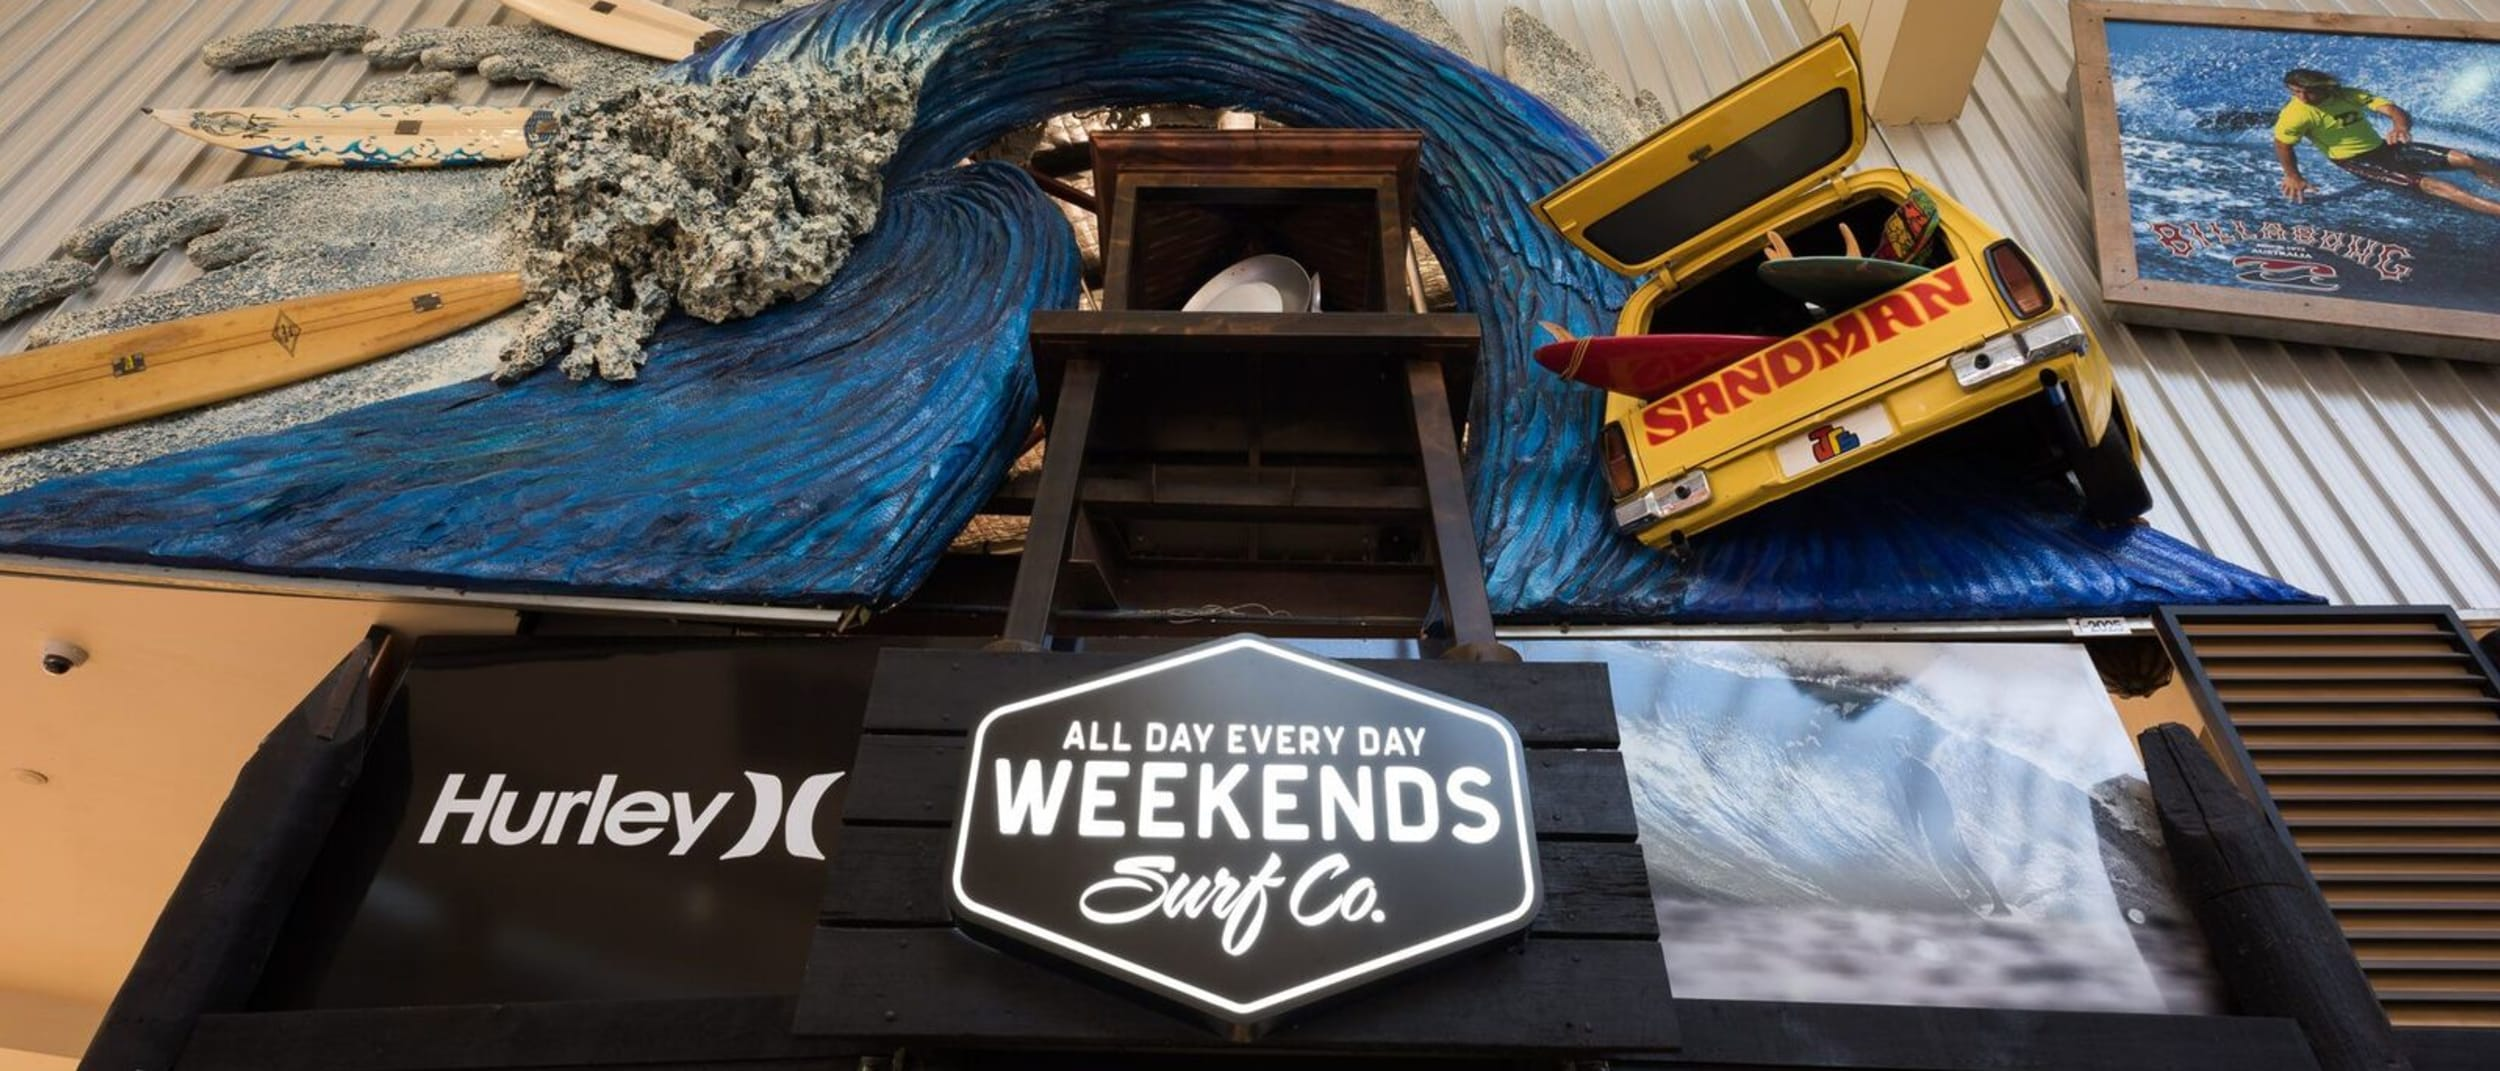 Westfield Marion's iconic surf store has a new identity